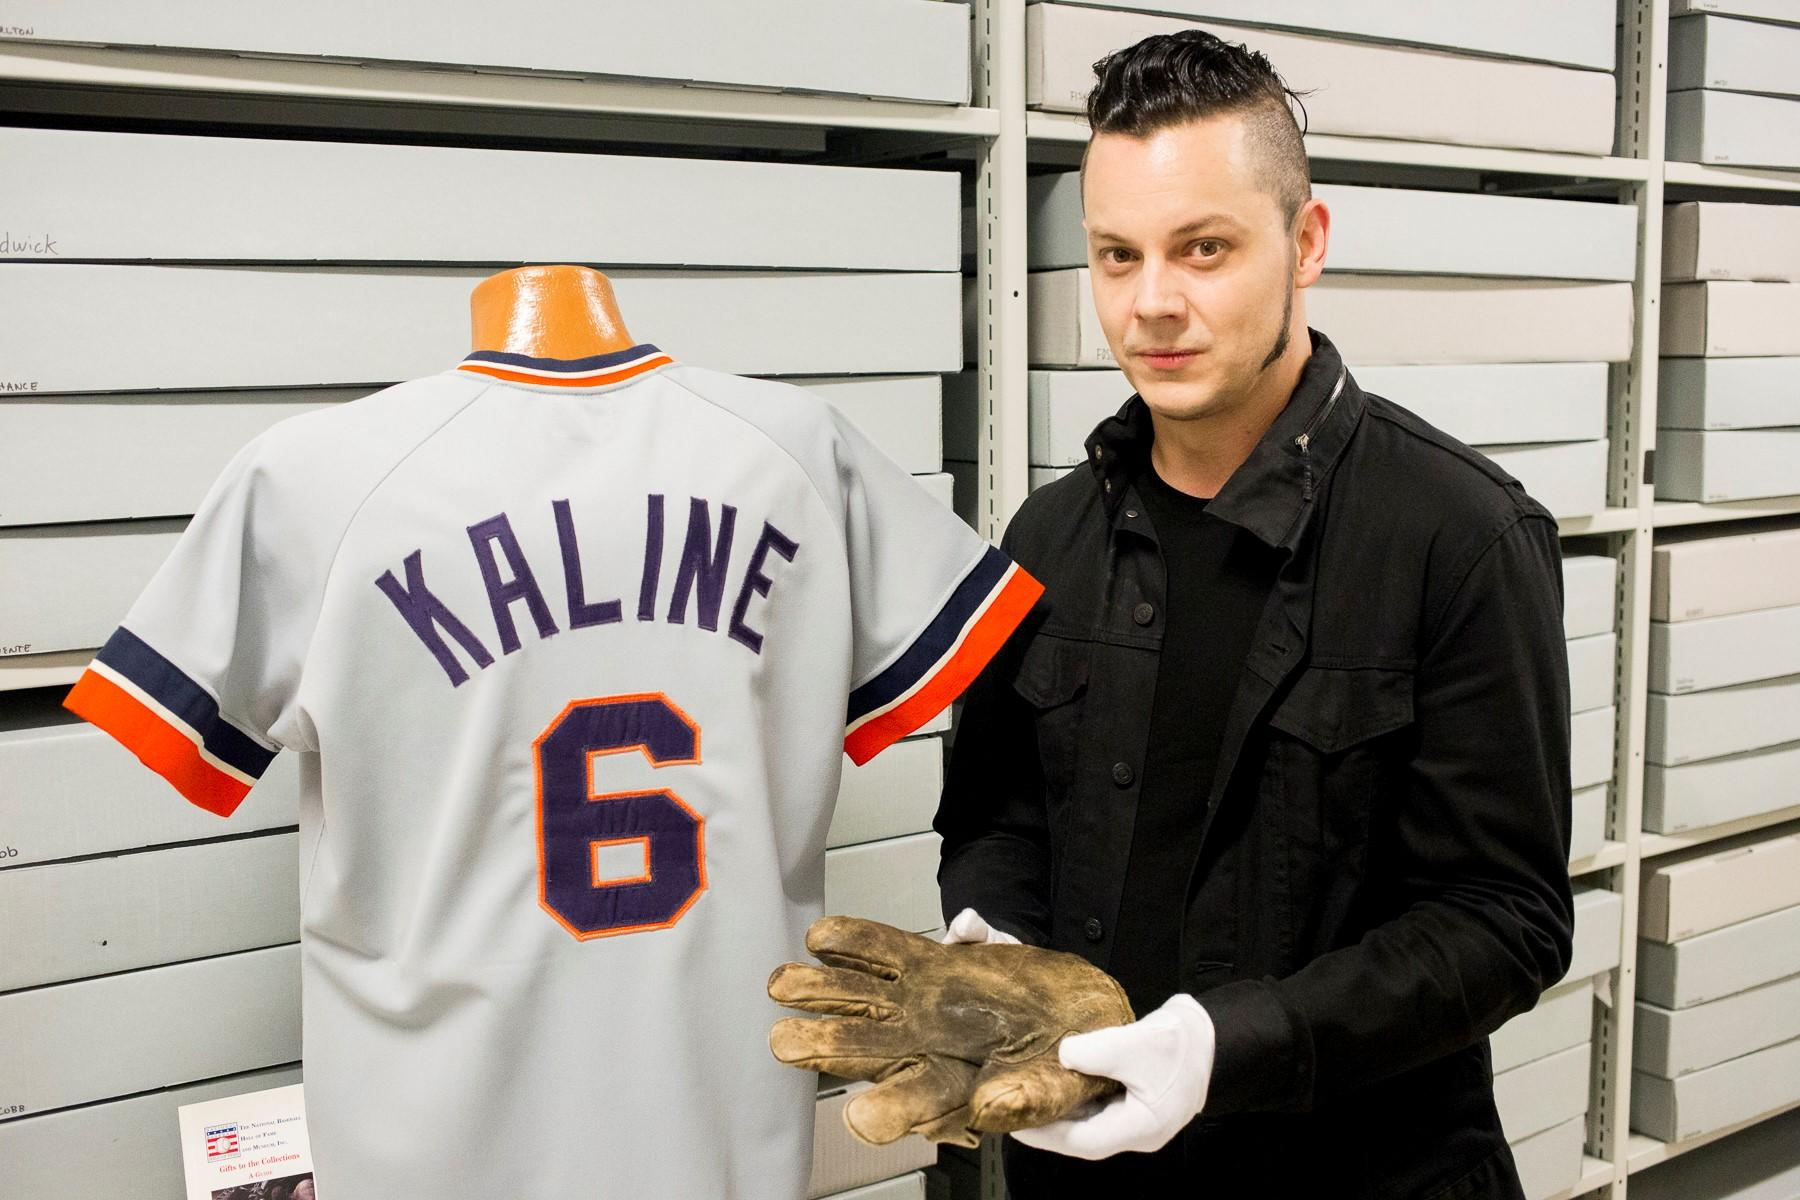 Tigers super-fan Jack White with Ty Cobb's glove and Al Kaline's jersey.